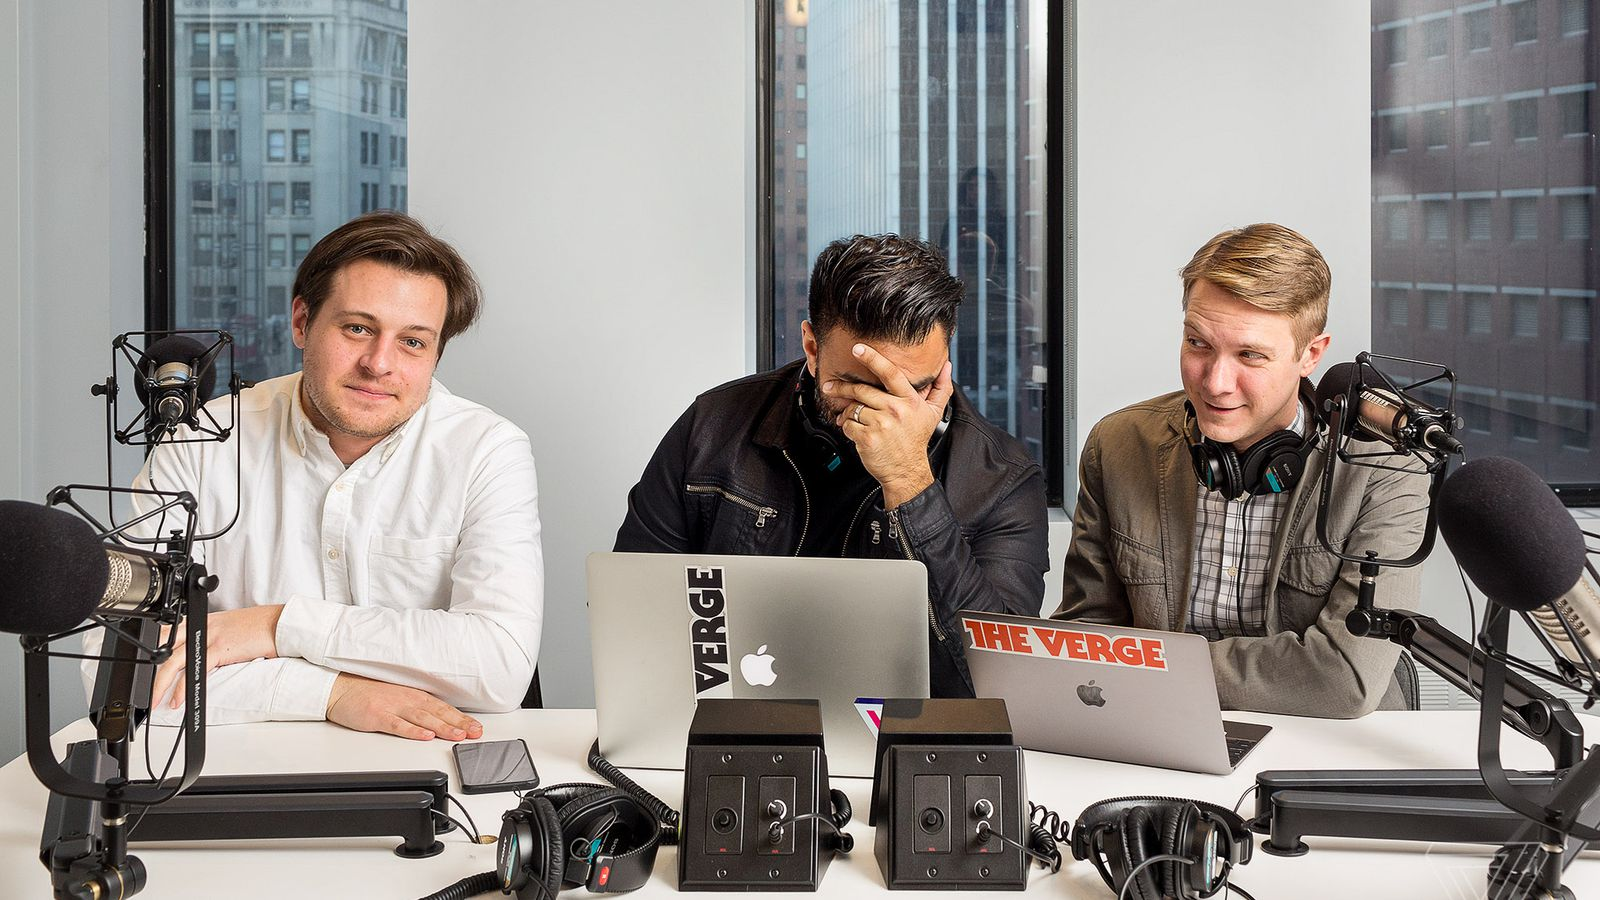 The Vergecast reports back from WWDC